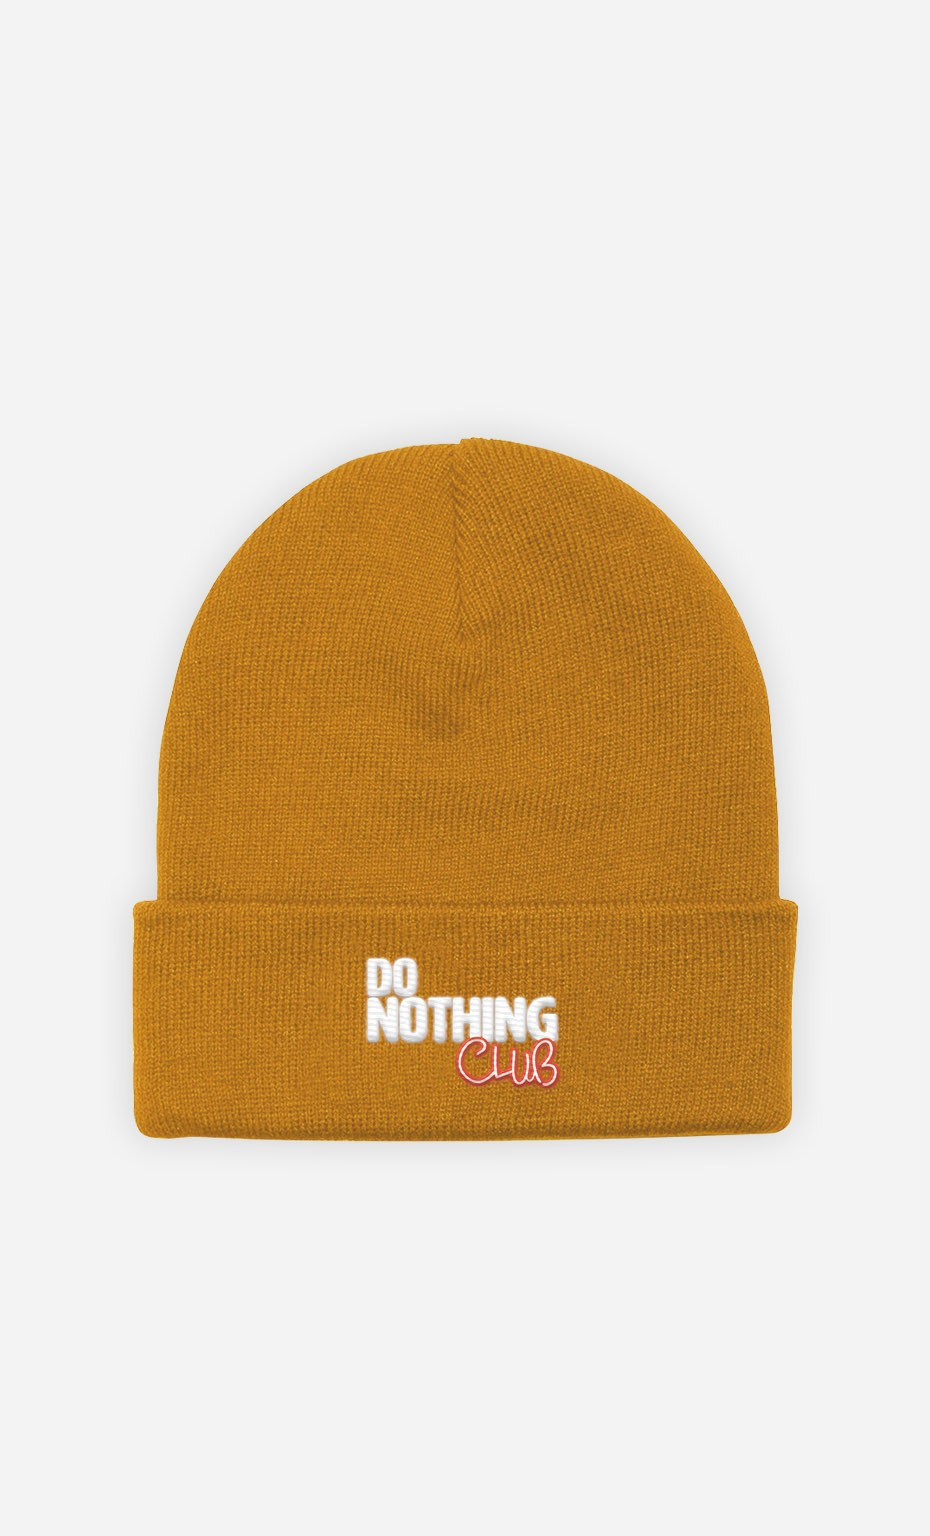 Bonnet Do Nothing Club